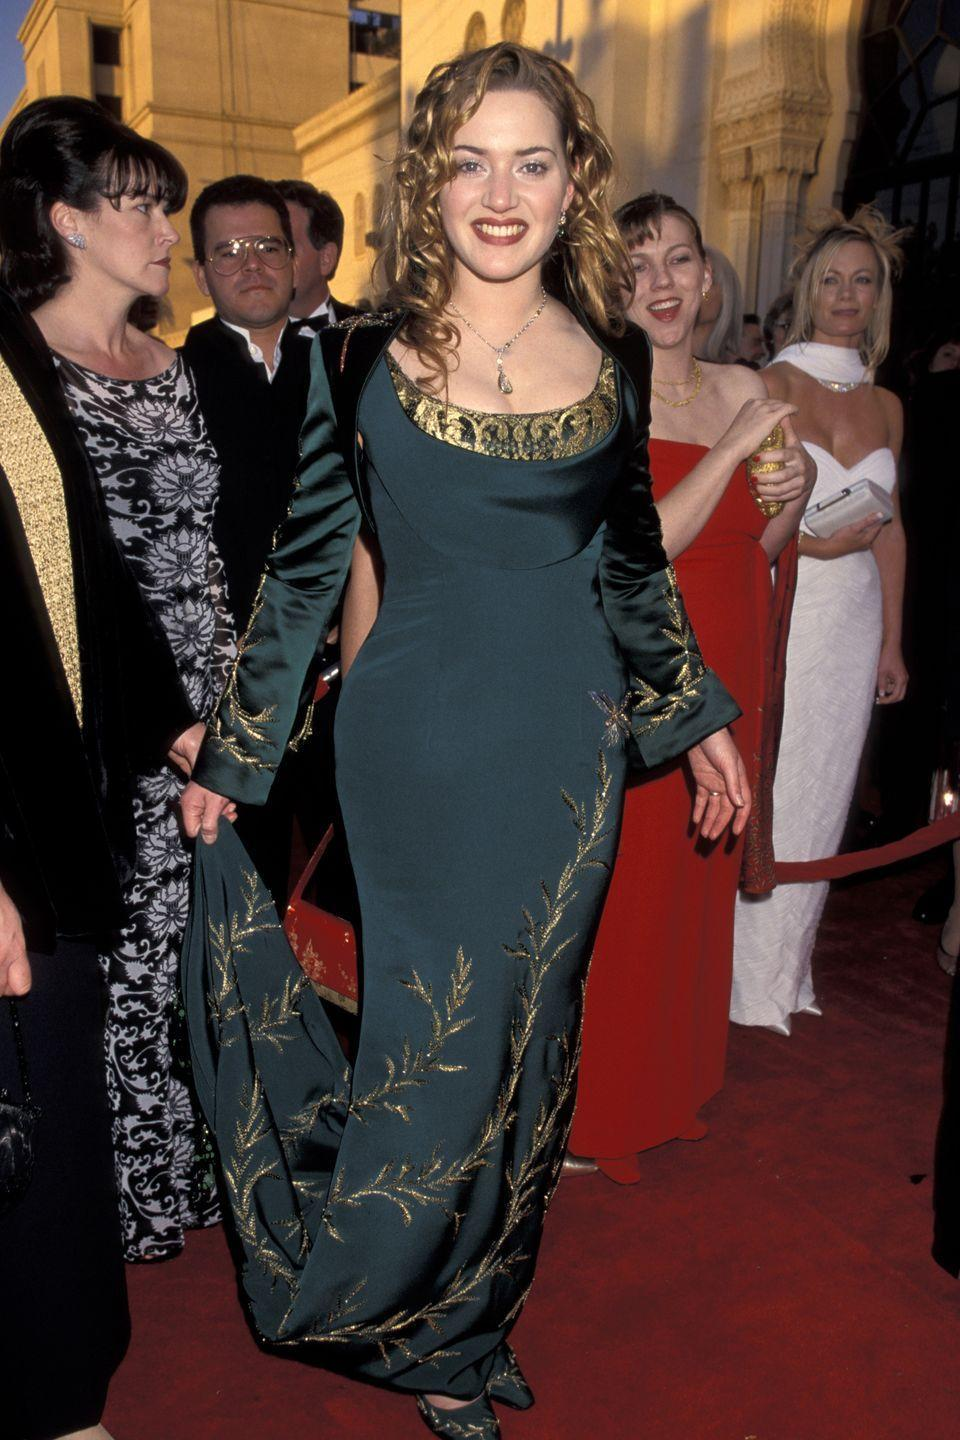 <p>The deep-green color and gold embroidery on the Givenchy gown Kate Winslet wore to the 1998 Oscars is so strikingly similar to Merida's we have to wonder if Disney used it as inspiration for their 2012 movie.</p>